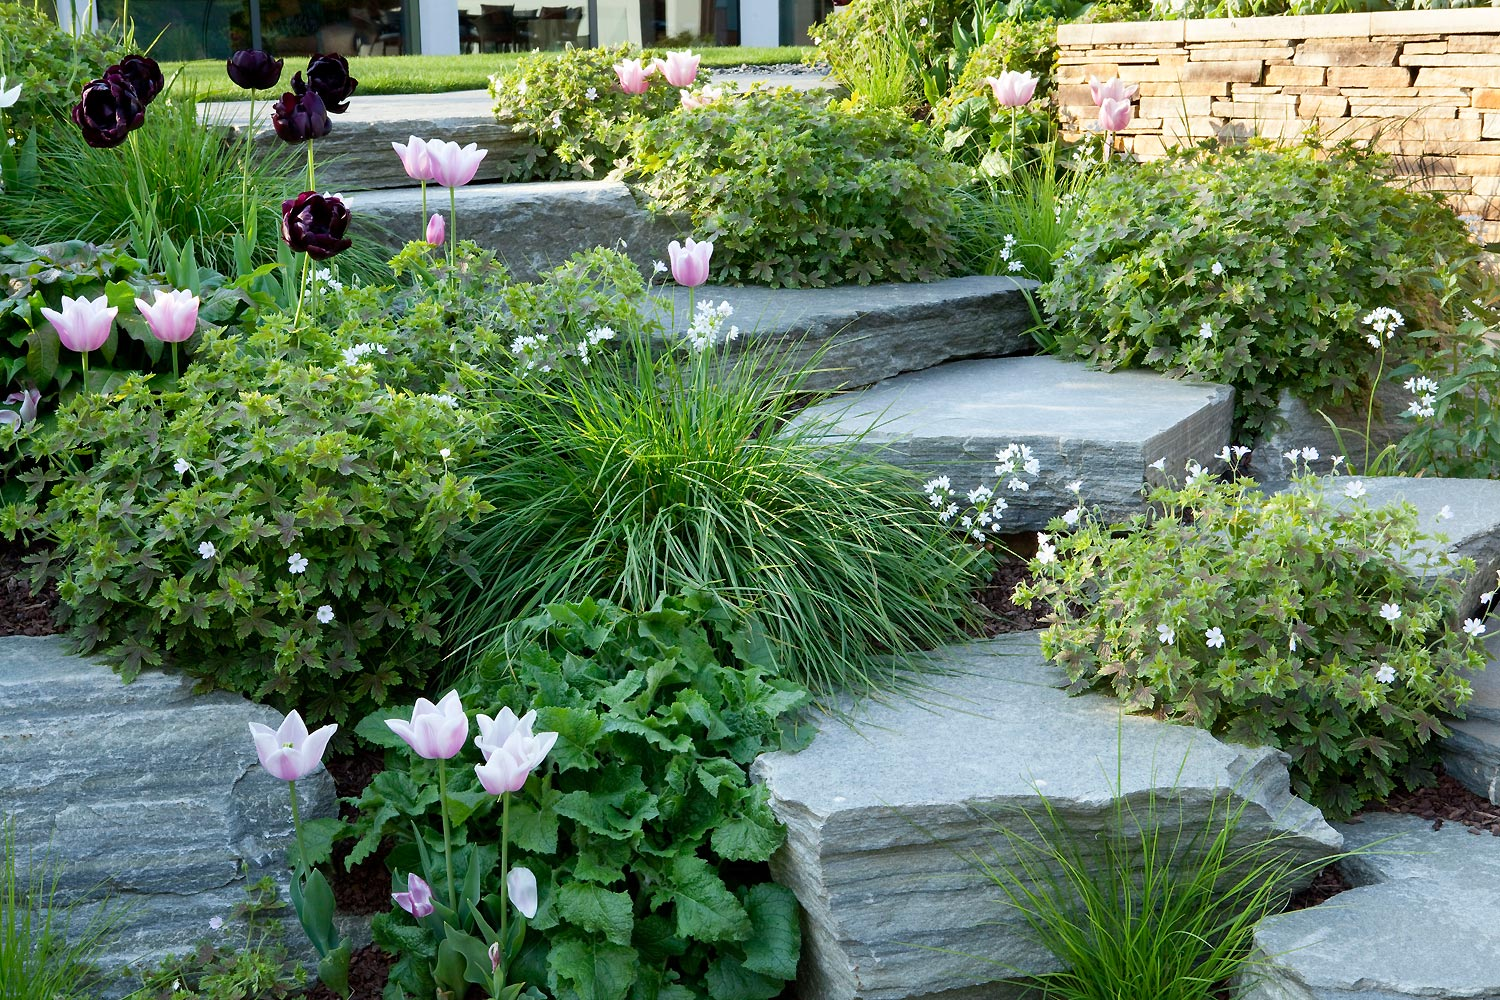 In love with beauty julie toll landscape garden design for Beautiful garden ideas